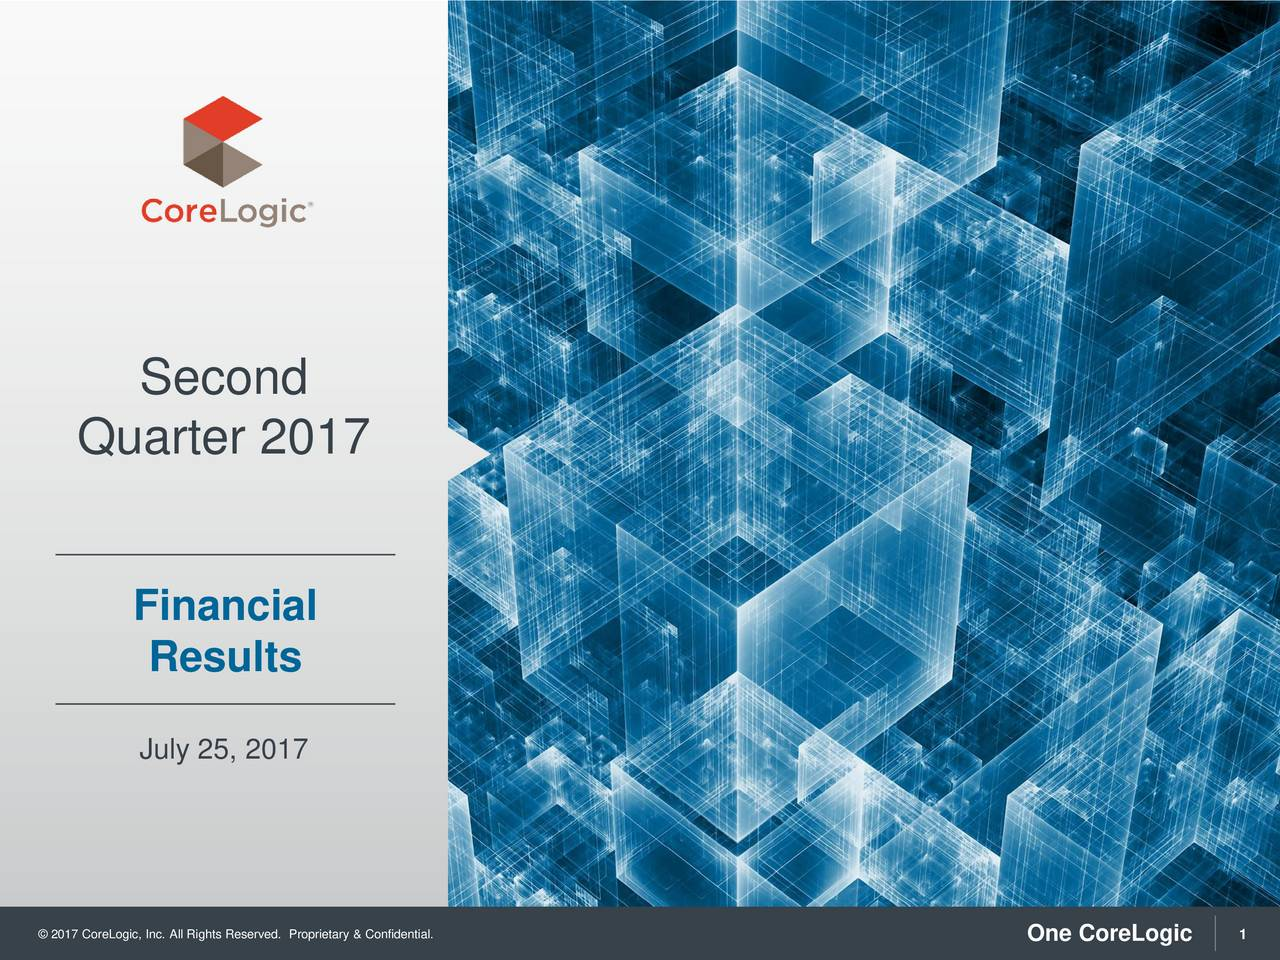 Quarter 2017 Financial Results July 25, 2017 2017 CoreLogic, Inc. All Rights Reserved. Proprietary & ConfOne CoreLogic1